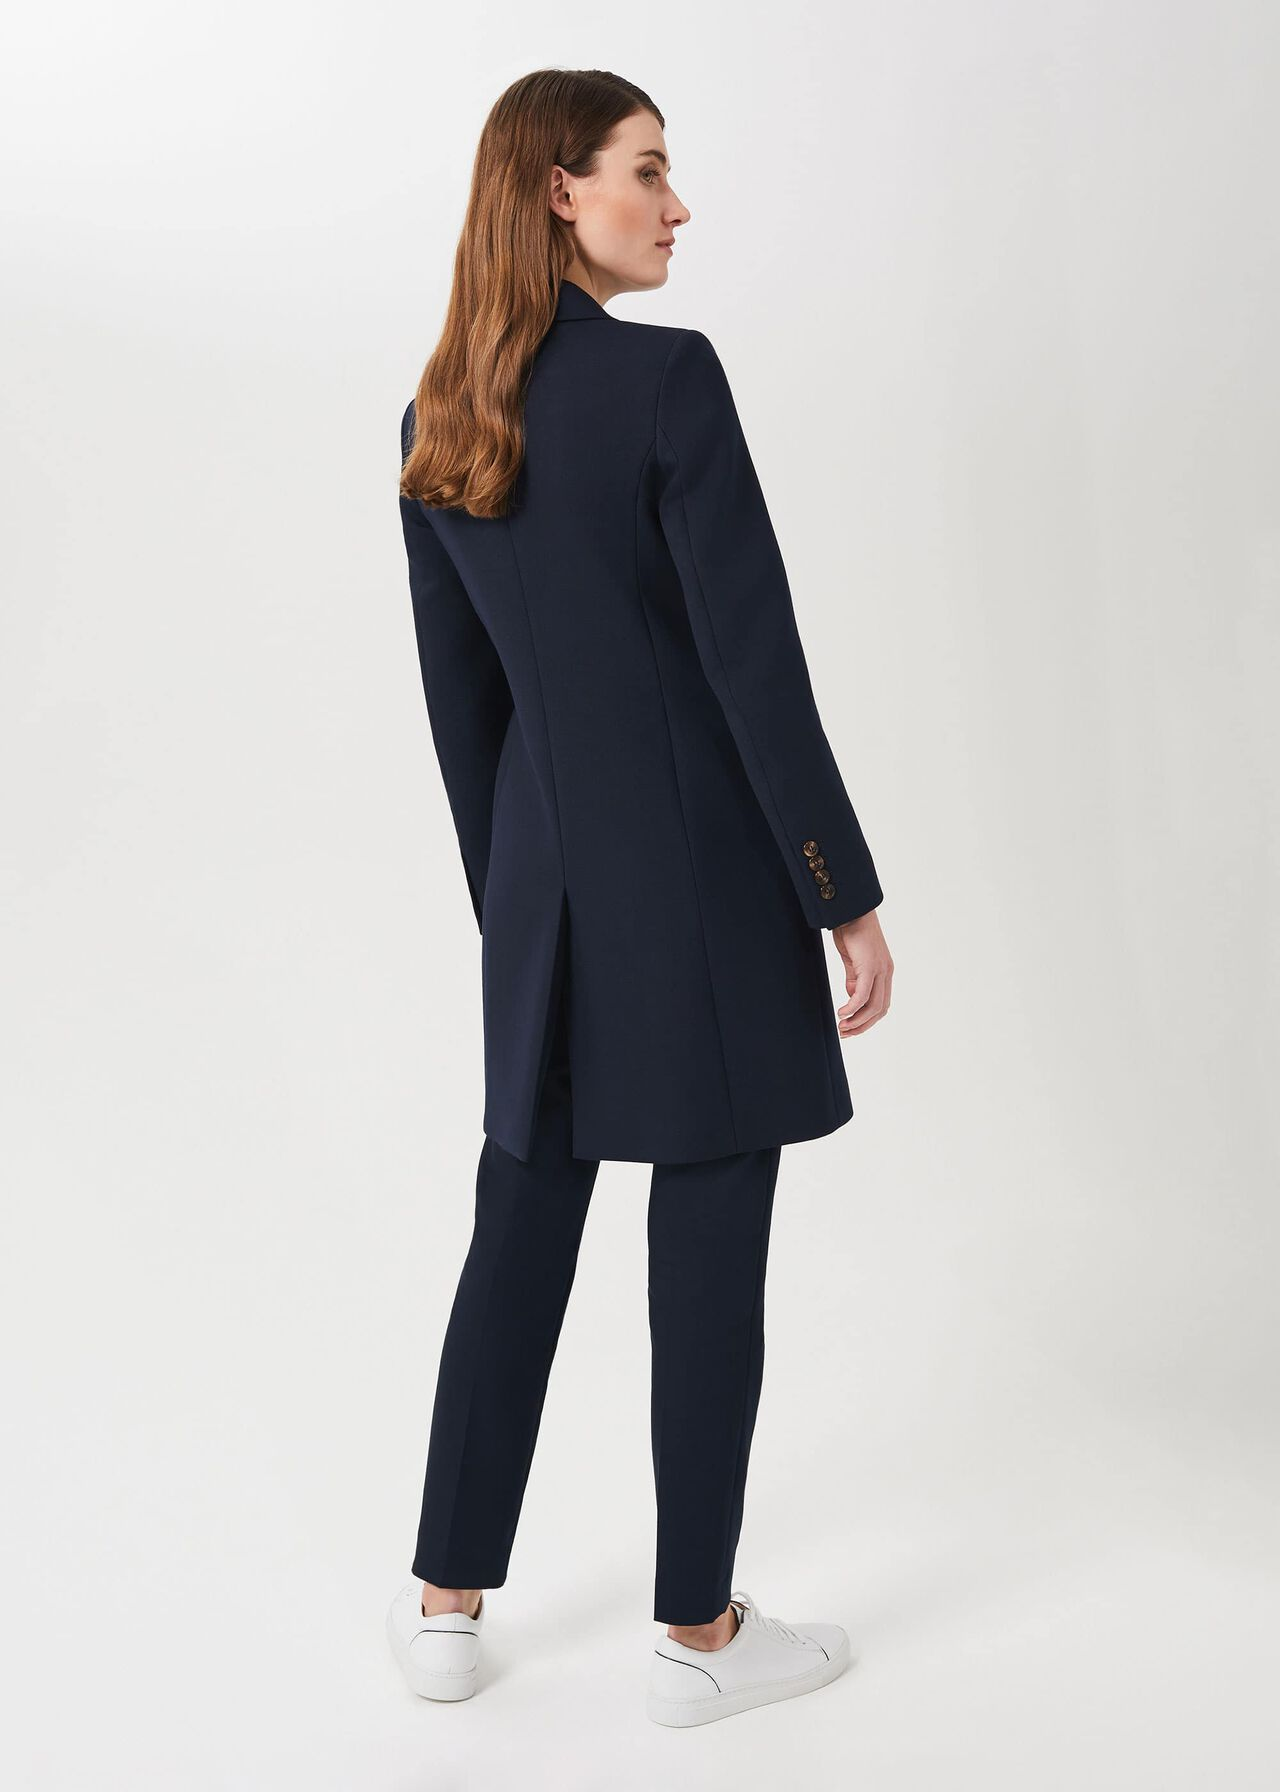 Melanie Double Breasted Coat With Wool, New Navy, hi-res